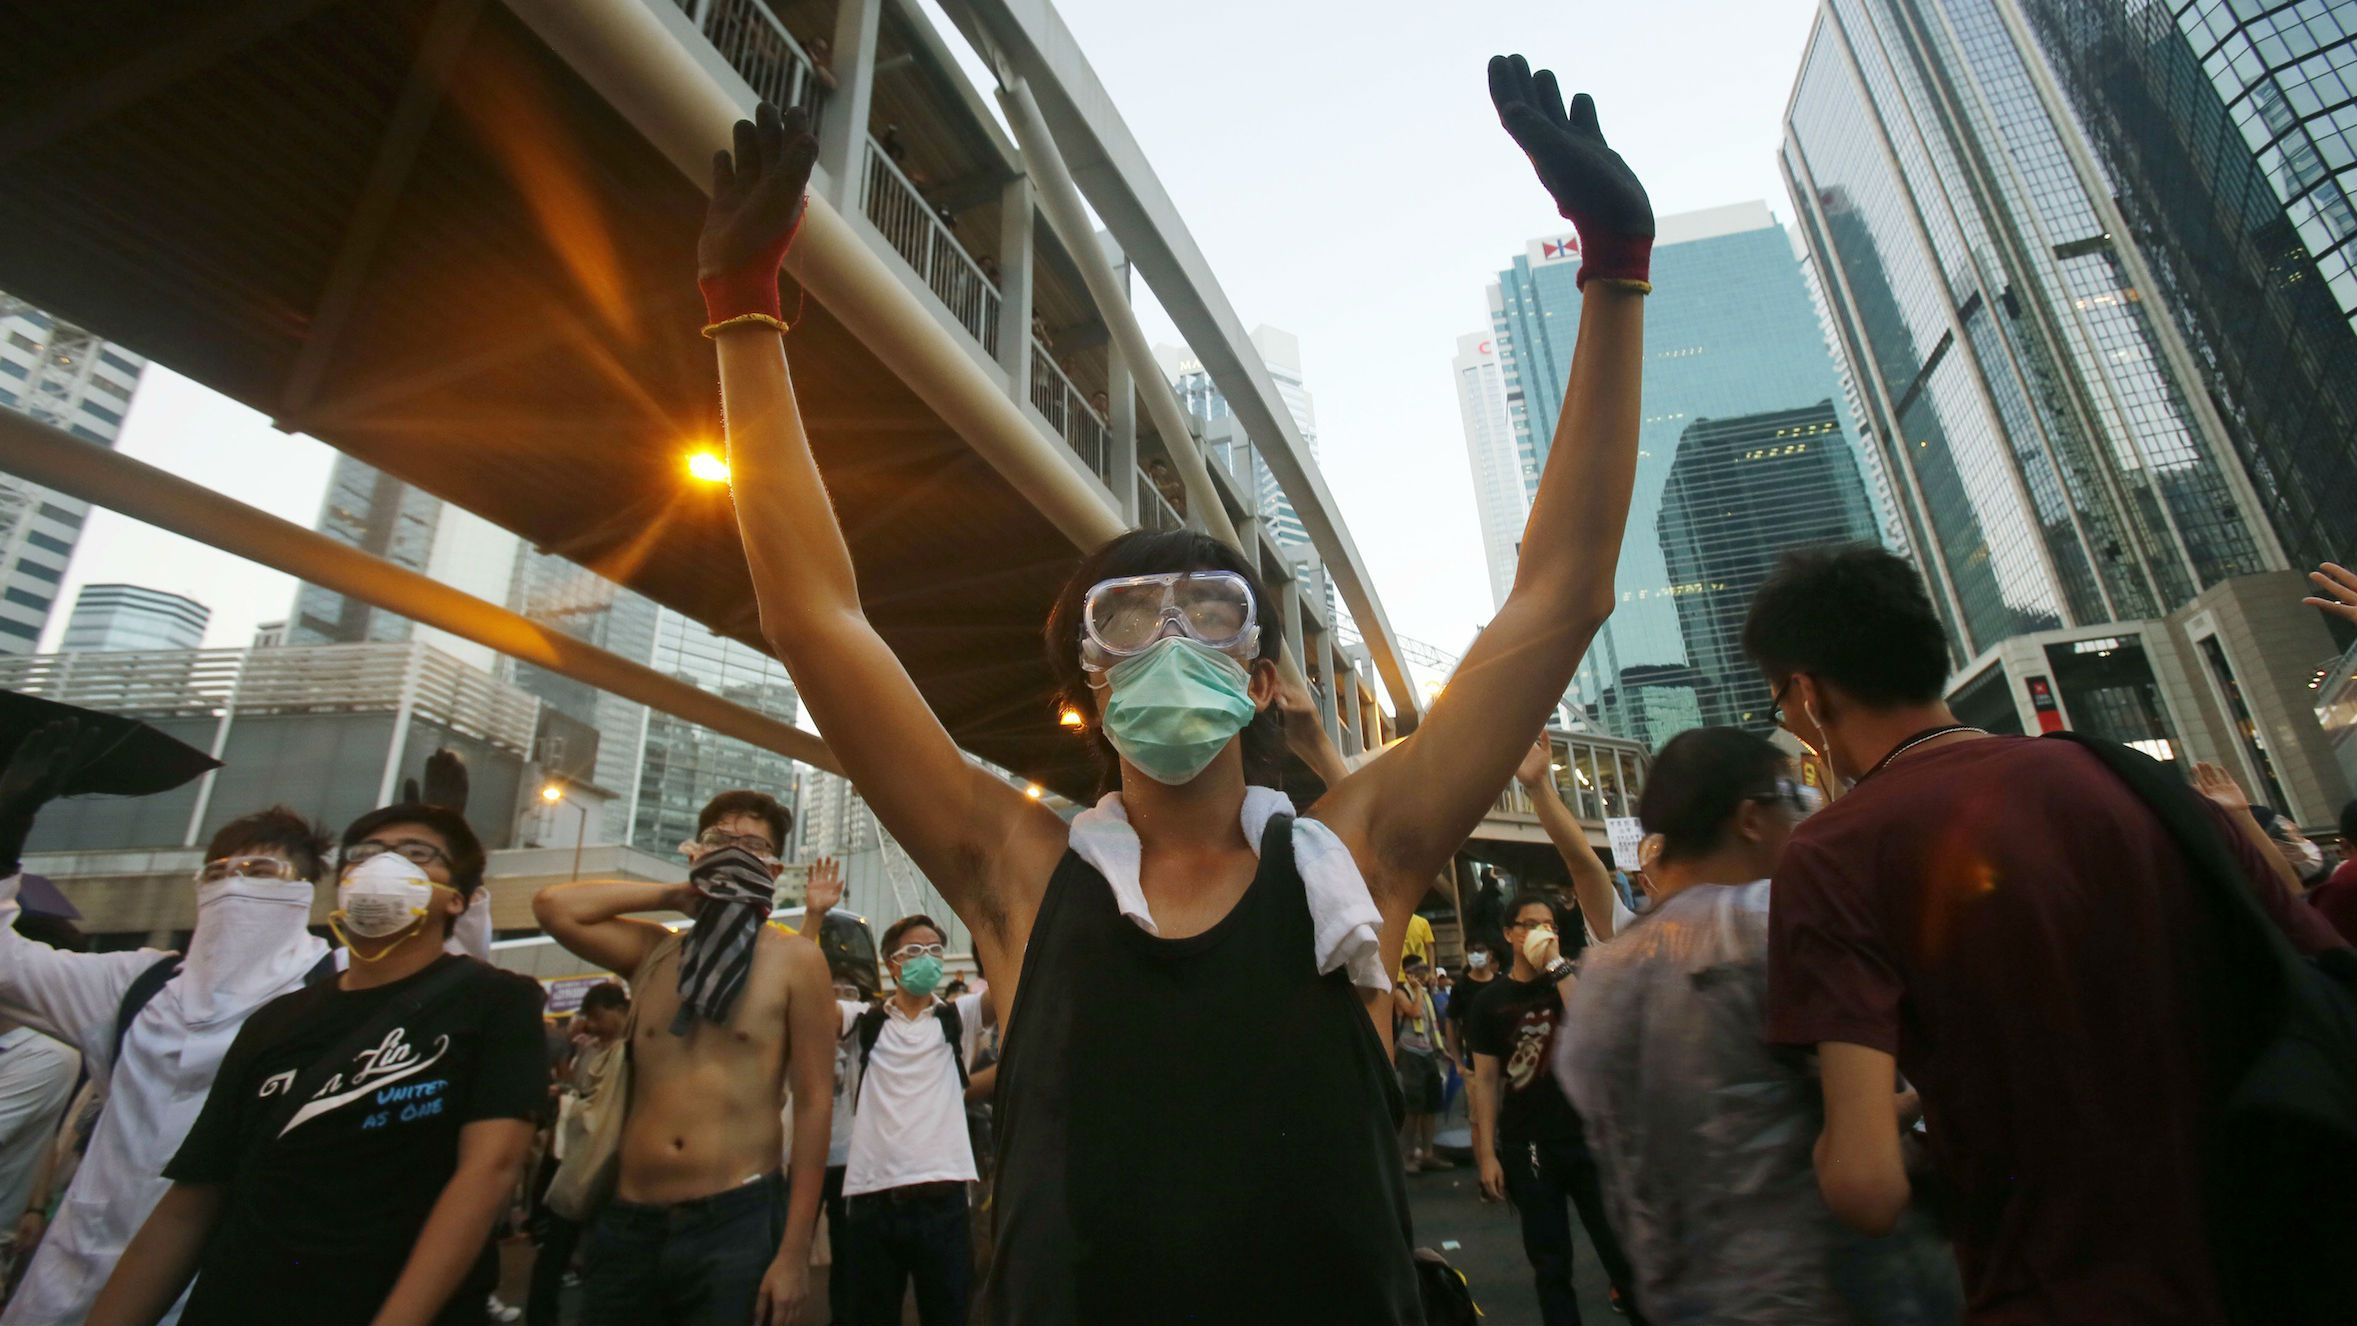 Student protesters occupy streets surrounding the government headquarters in Hong Kong, Sunday evening, Sept. 28, 2014. A tense standoff between thousands of Hong Kong pro-democracy protesters and police warning of a crackdown spiraled into an extraordinary scene of chaos Sunday as the crowd jammed a busy road and clashed with officers wielding pepper spray. (AP Photo/Wally Santana